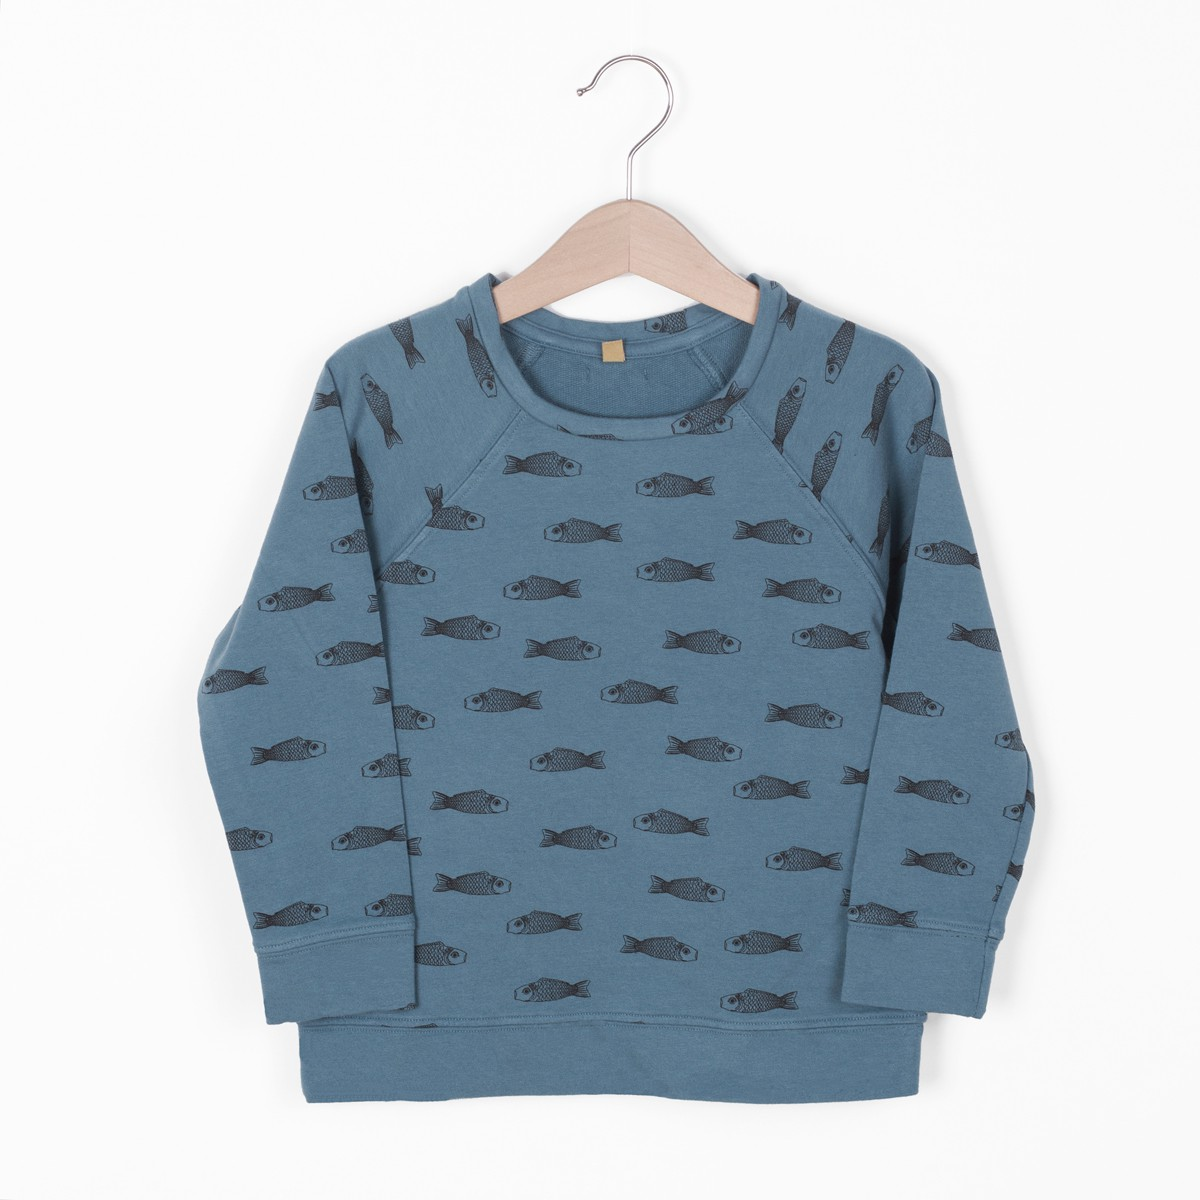 Fishes sweater